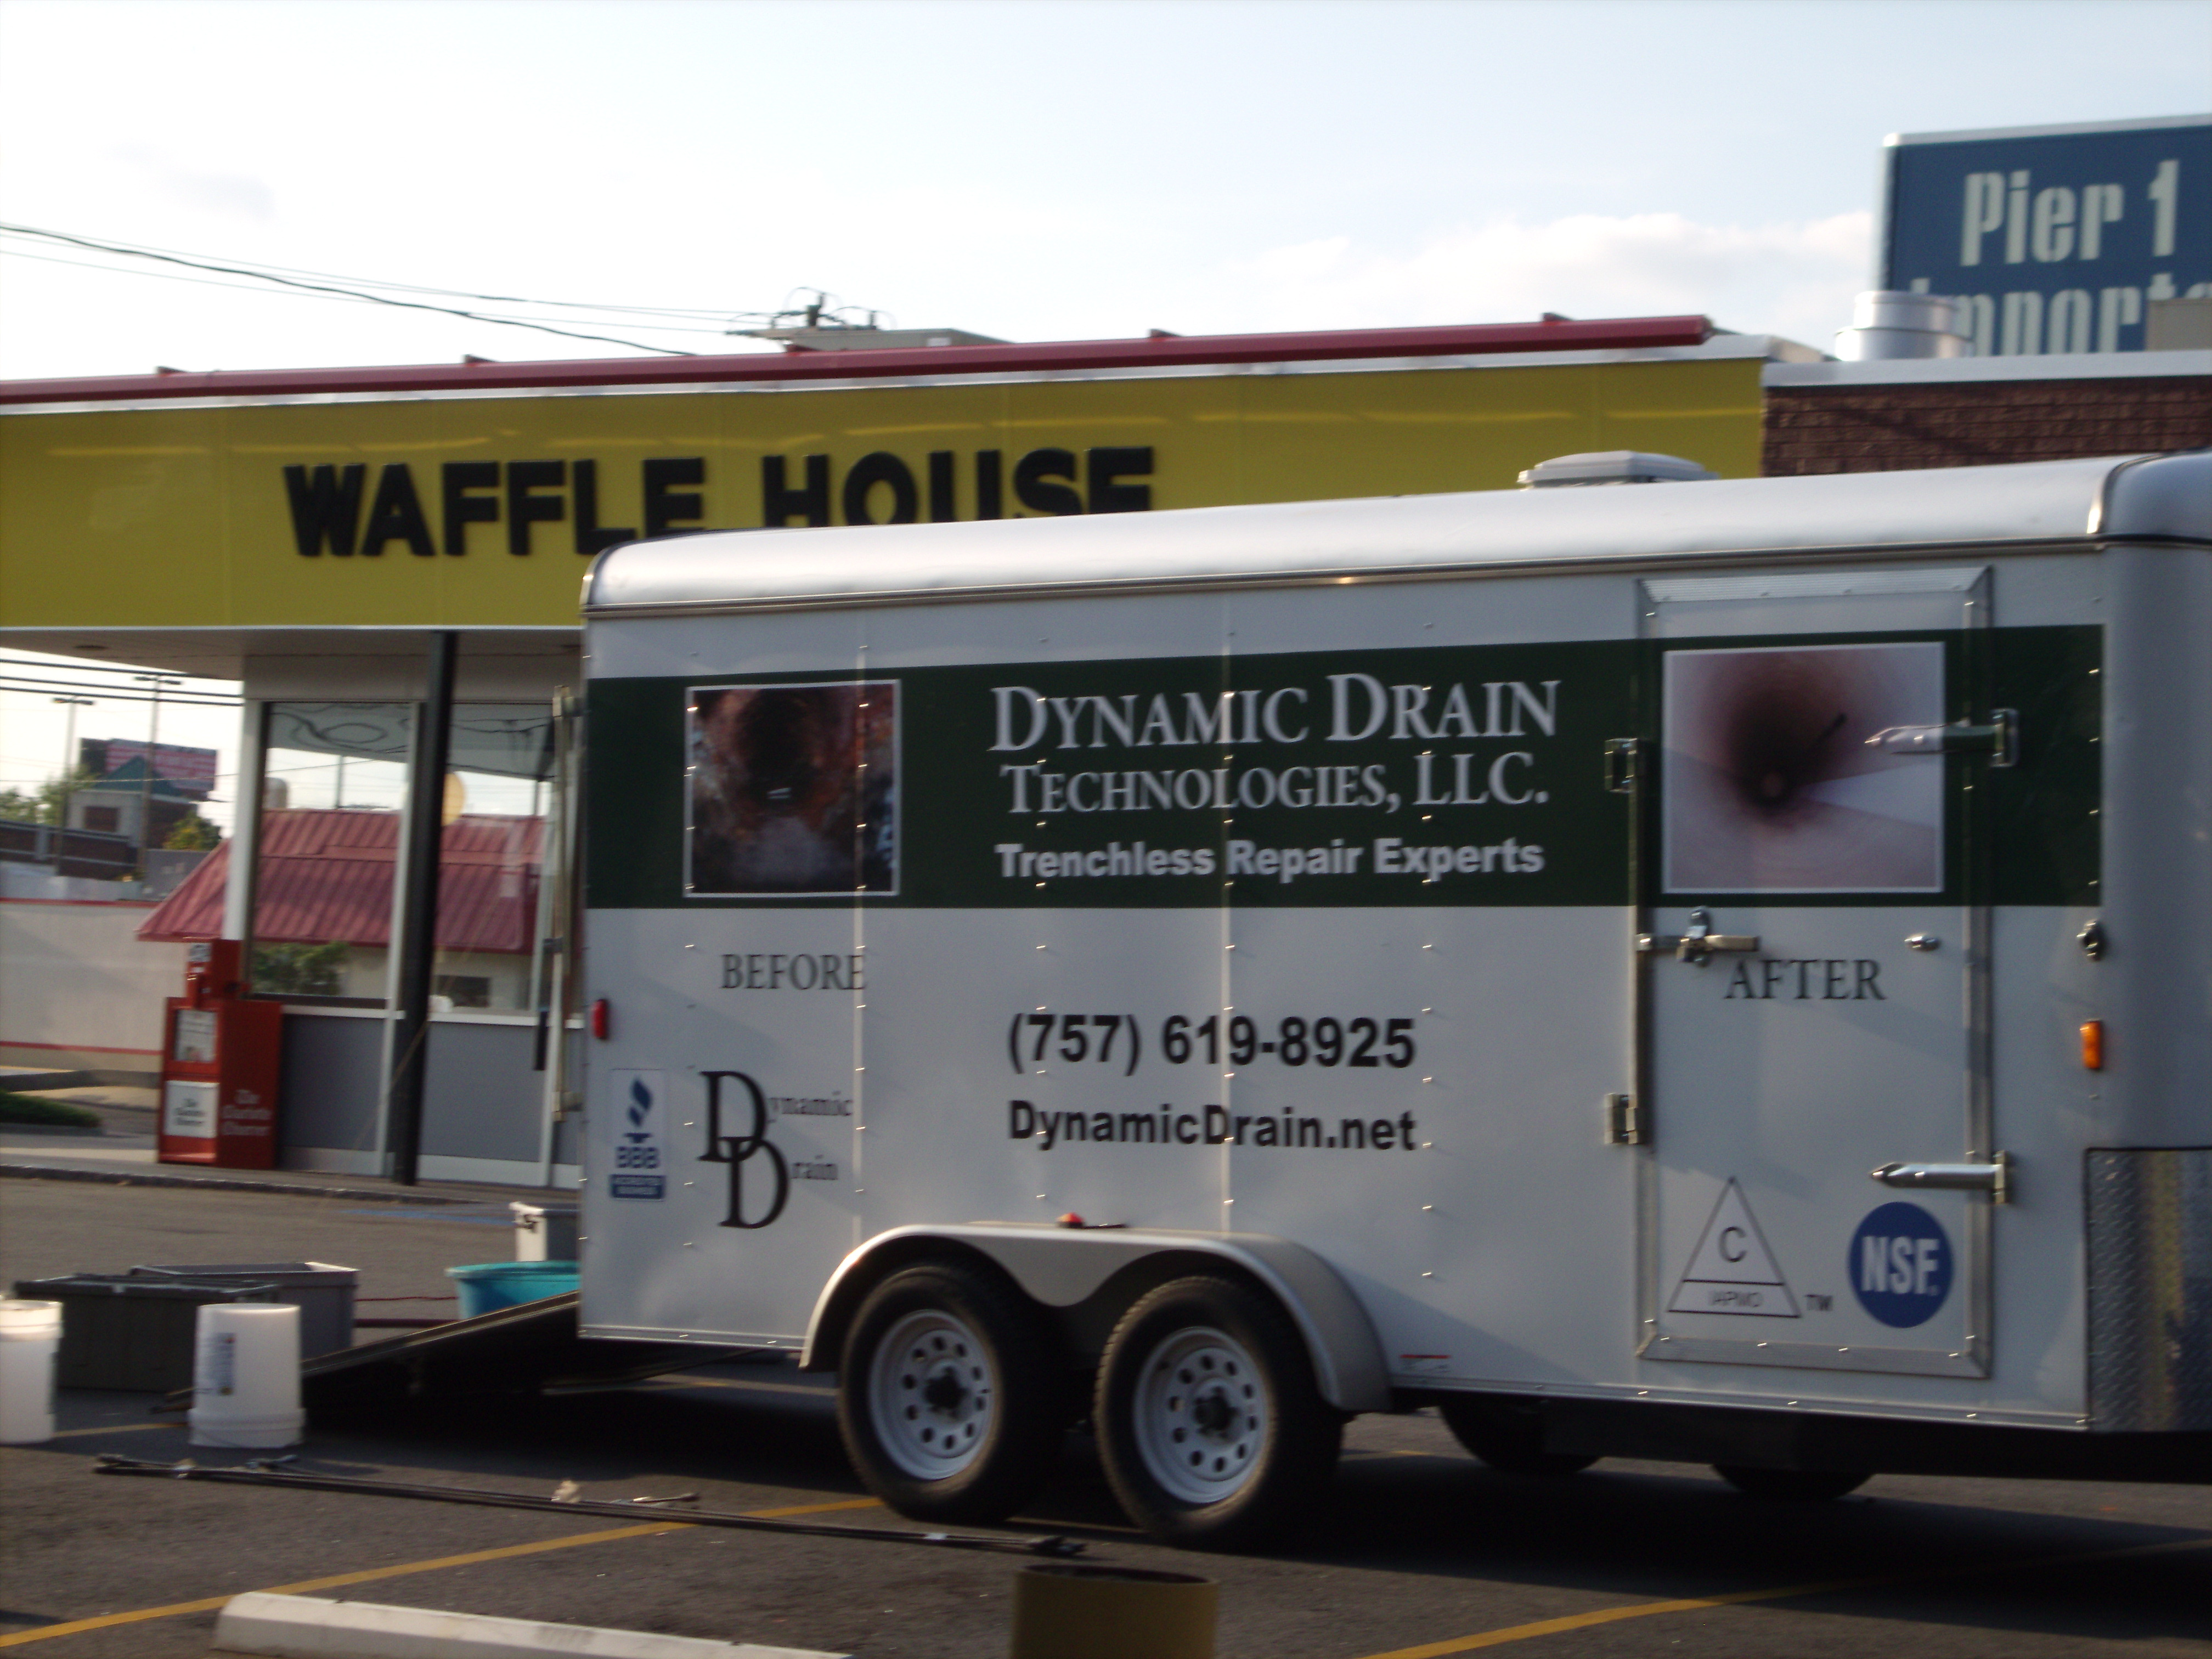 Cipp pipe repair in charlotte nc dynamic drain mobile trenchless sewer repair unit in charlotte malvernweather Gallery